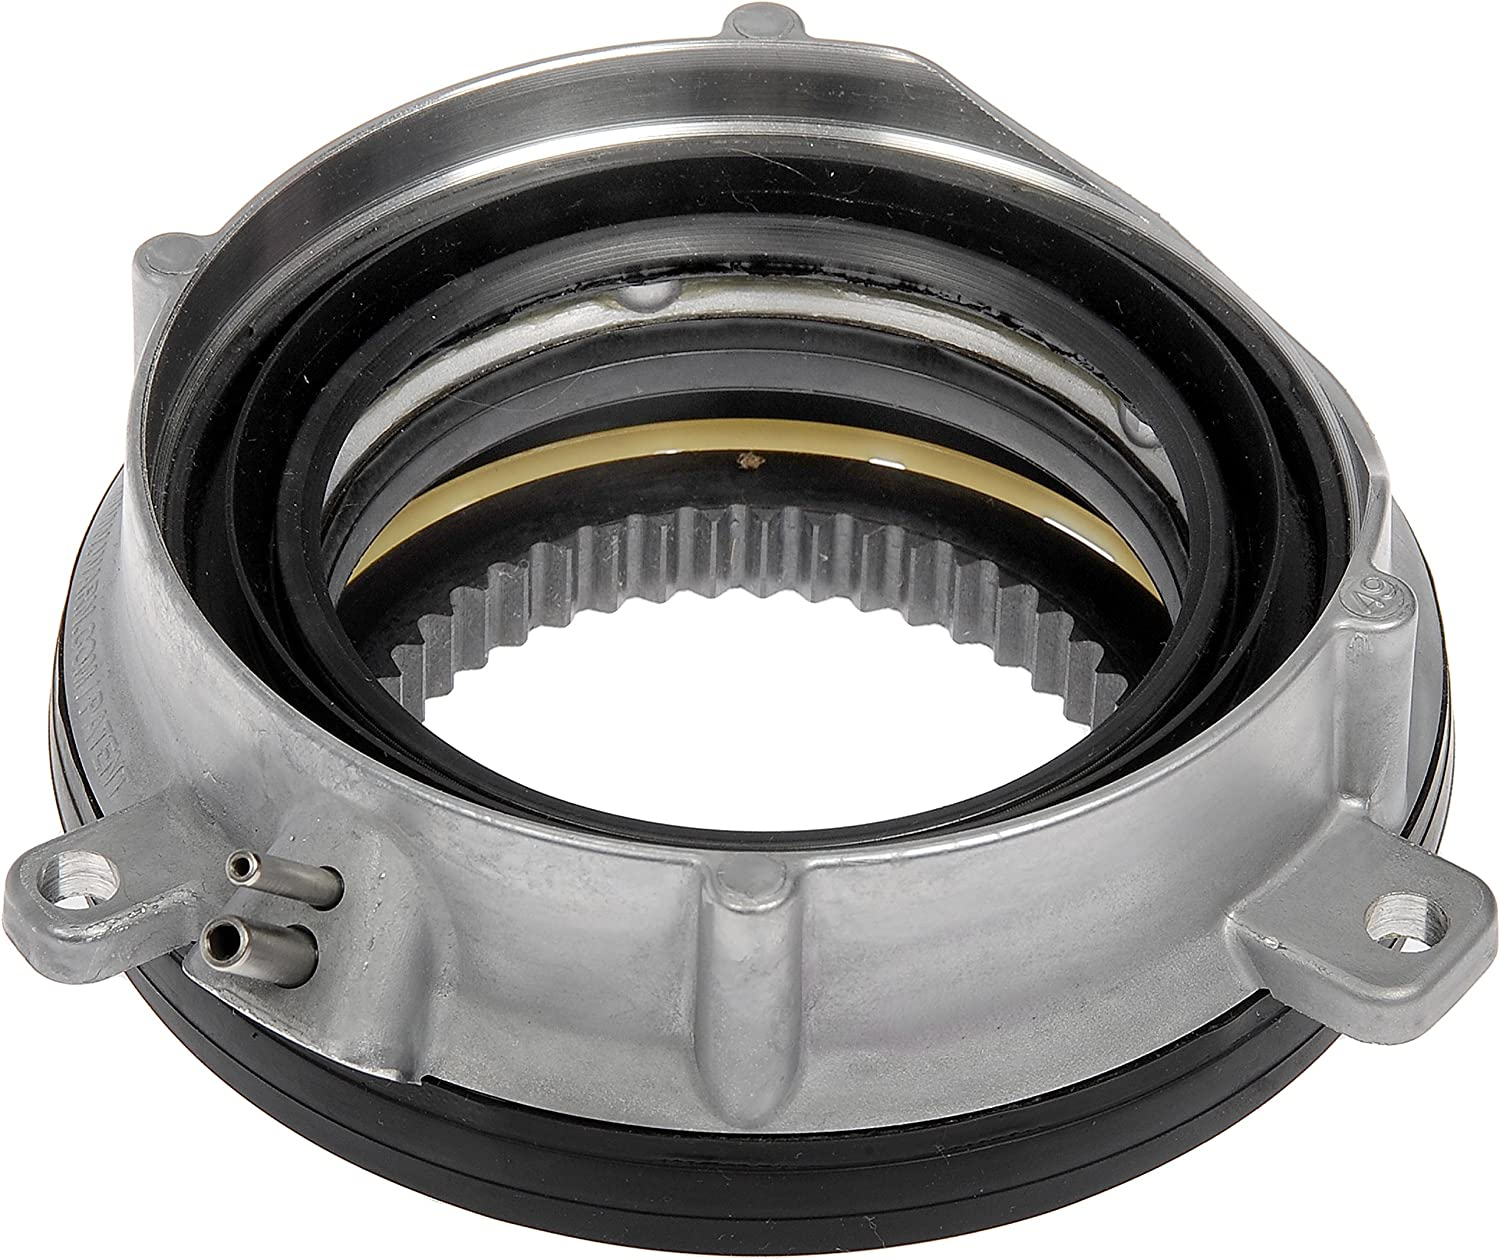 Dorman 600-105 4WD Locking Hub Actuator for Select Ford/Lincoln Models